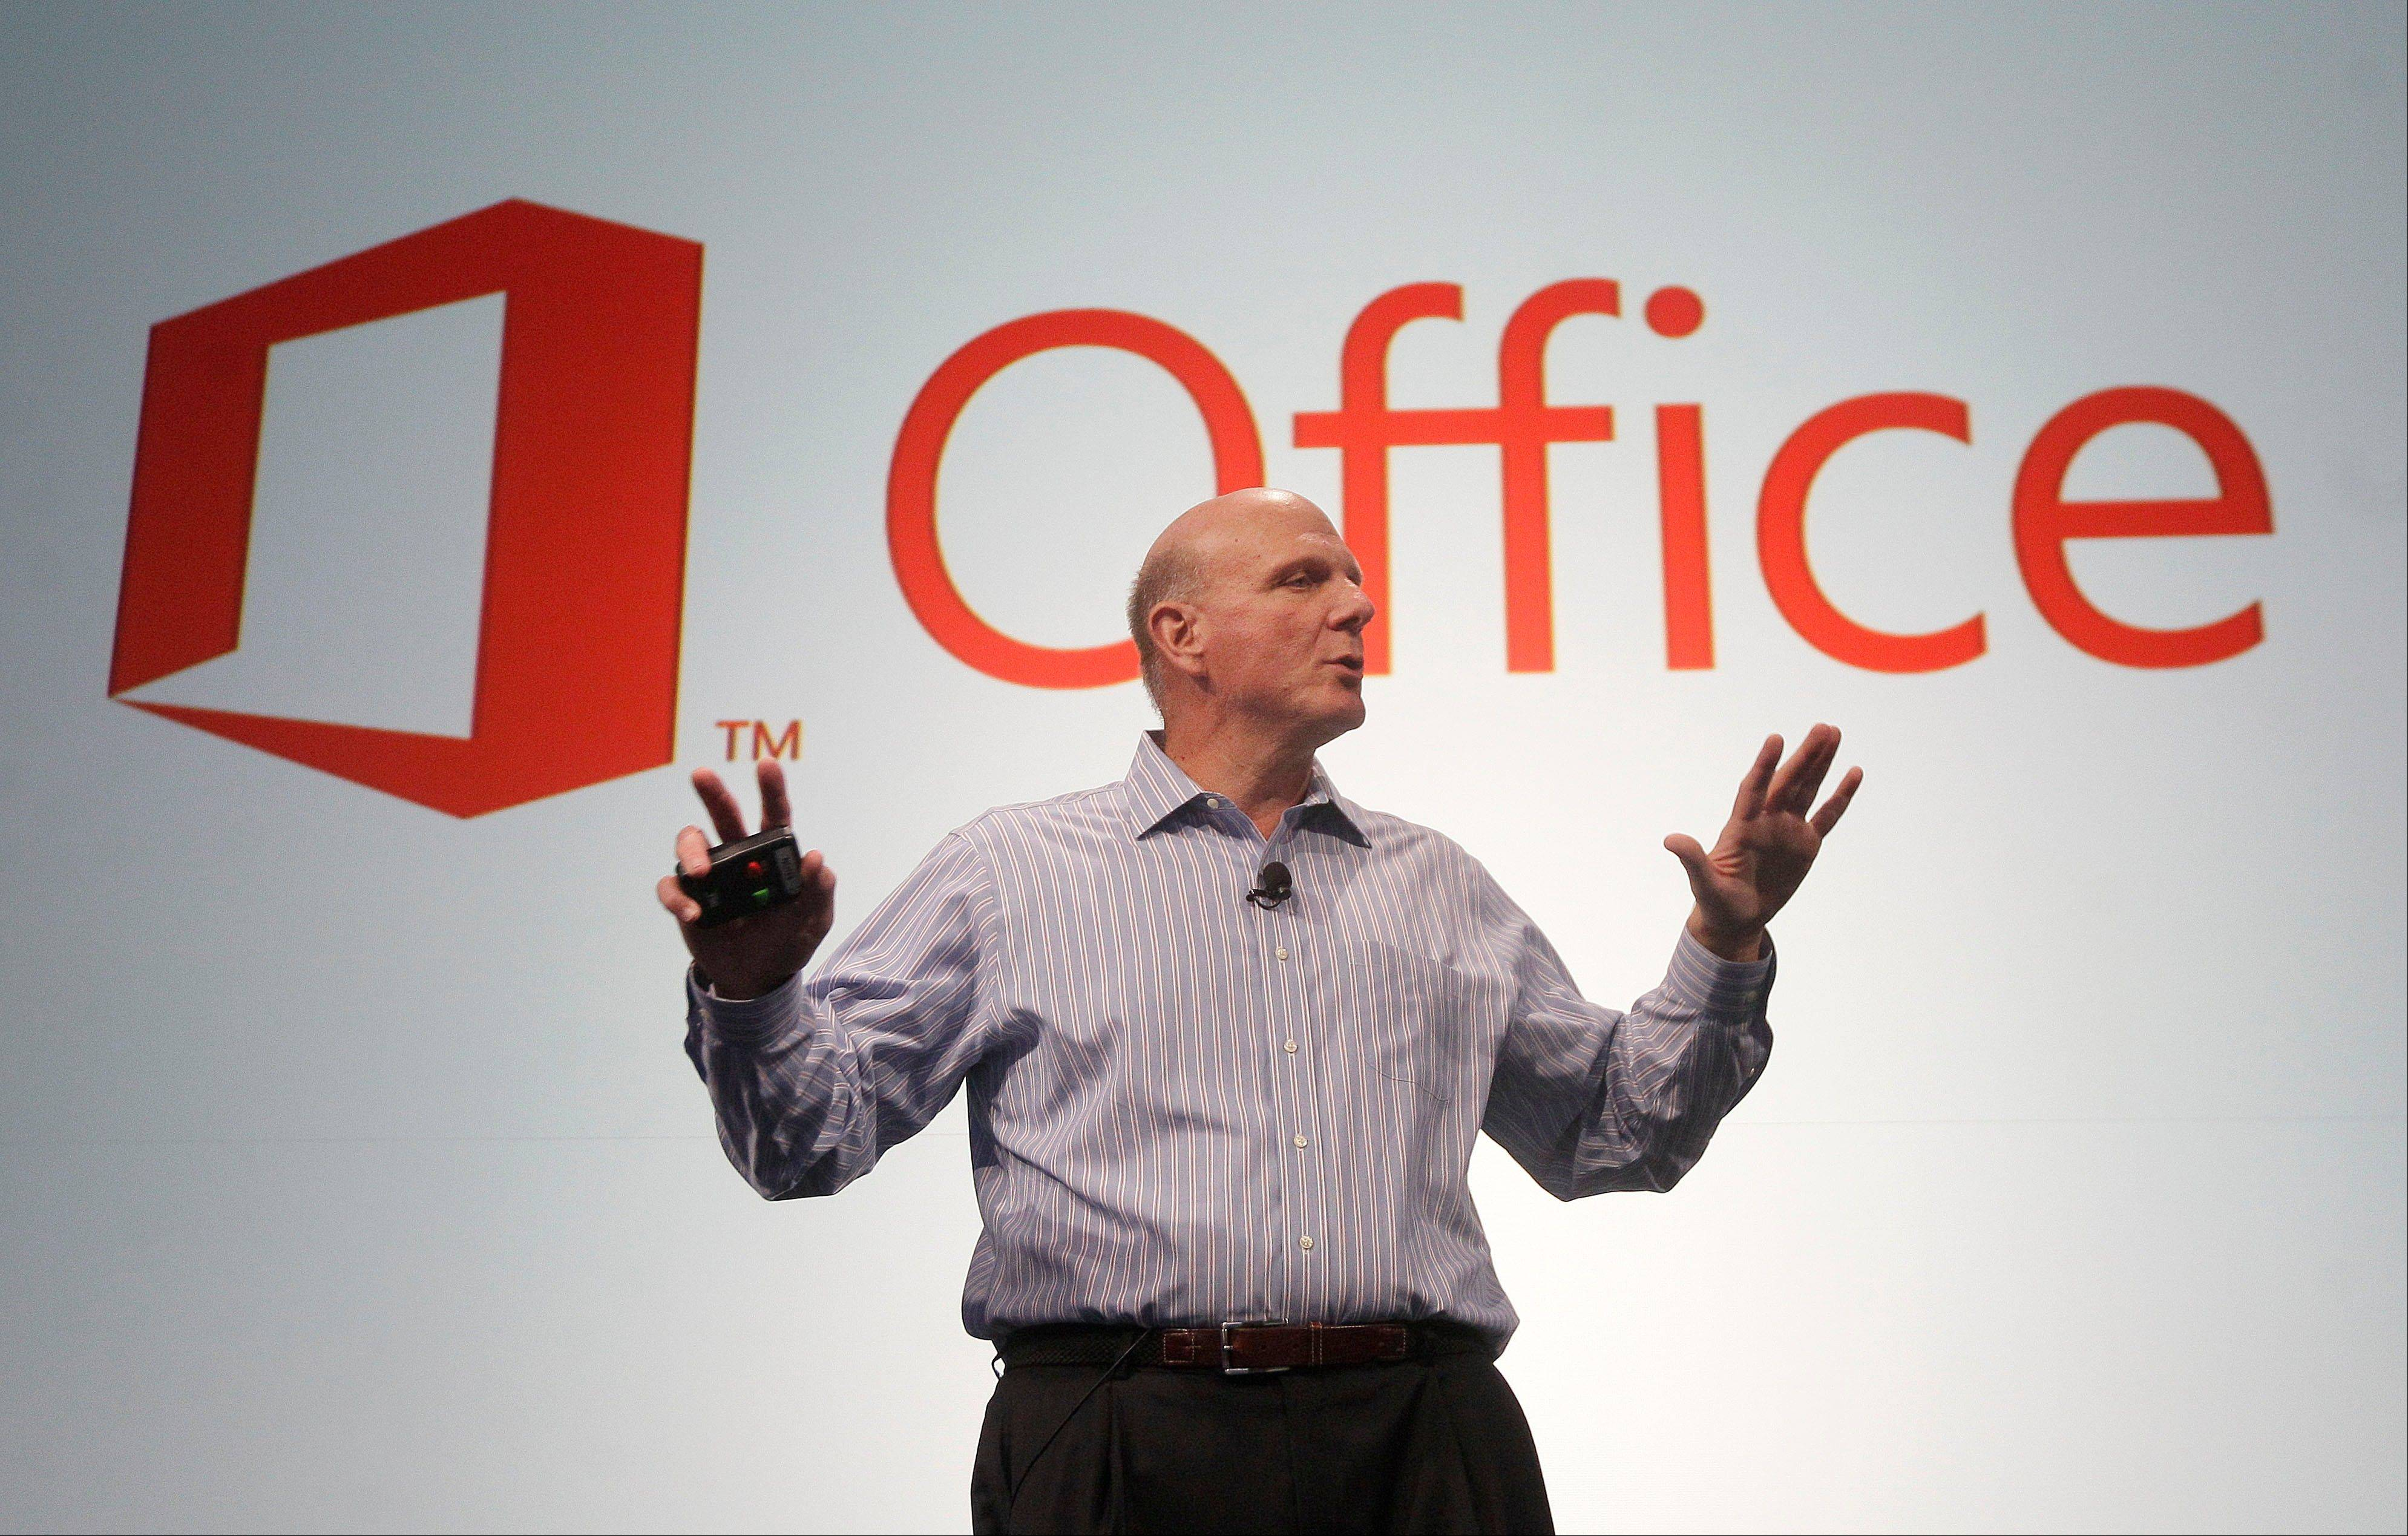 Microsoft CEO Steve Ballmer speaks at a Microsoft event in San Francisco, Monday, July 16, 2012. Microsoft unveiled a new version of its widely used, lucrative suite of word processing, spreadsheet and email programs Monday, one designed specifically with tablet computers and Internet-based storage in mind.